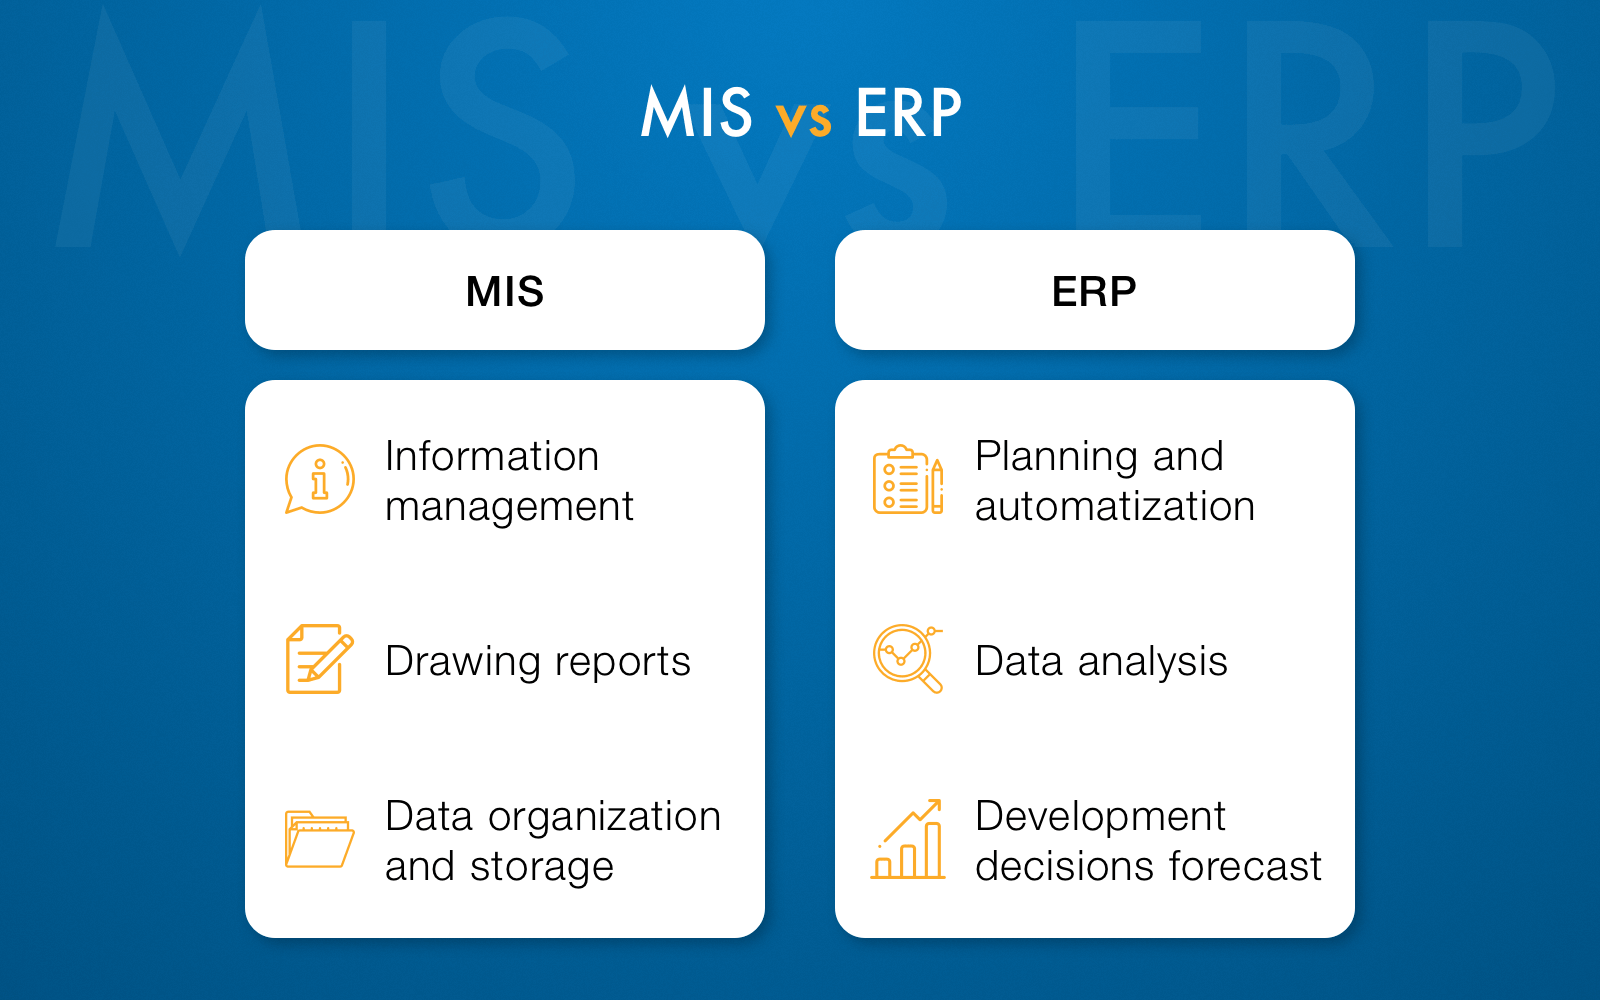 Comparison of MIS vs ERP systems